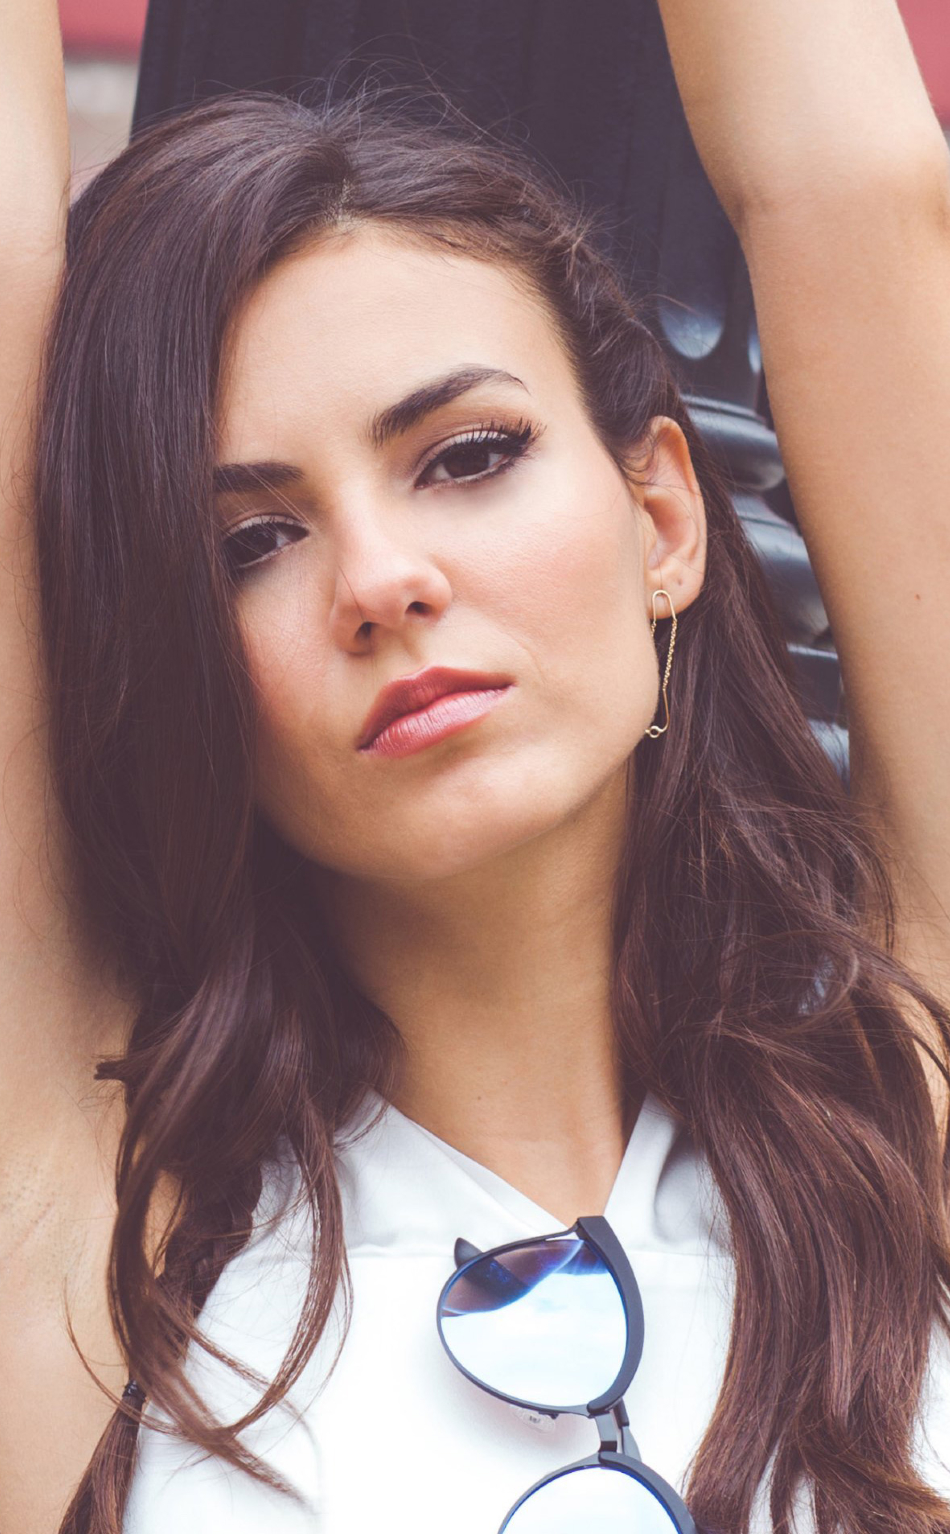 Download Victoria Justice 2017 Photoshoot 950x1534 Resolution Full